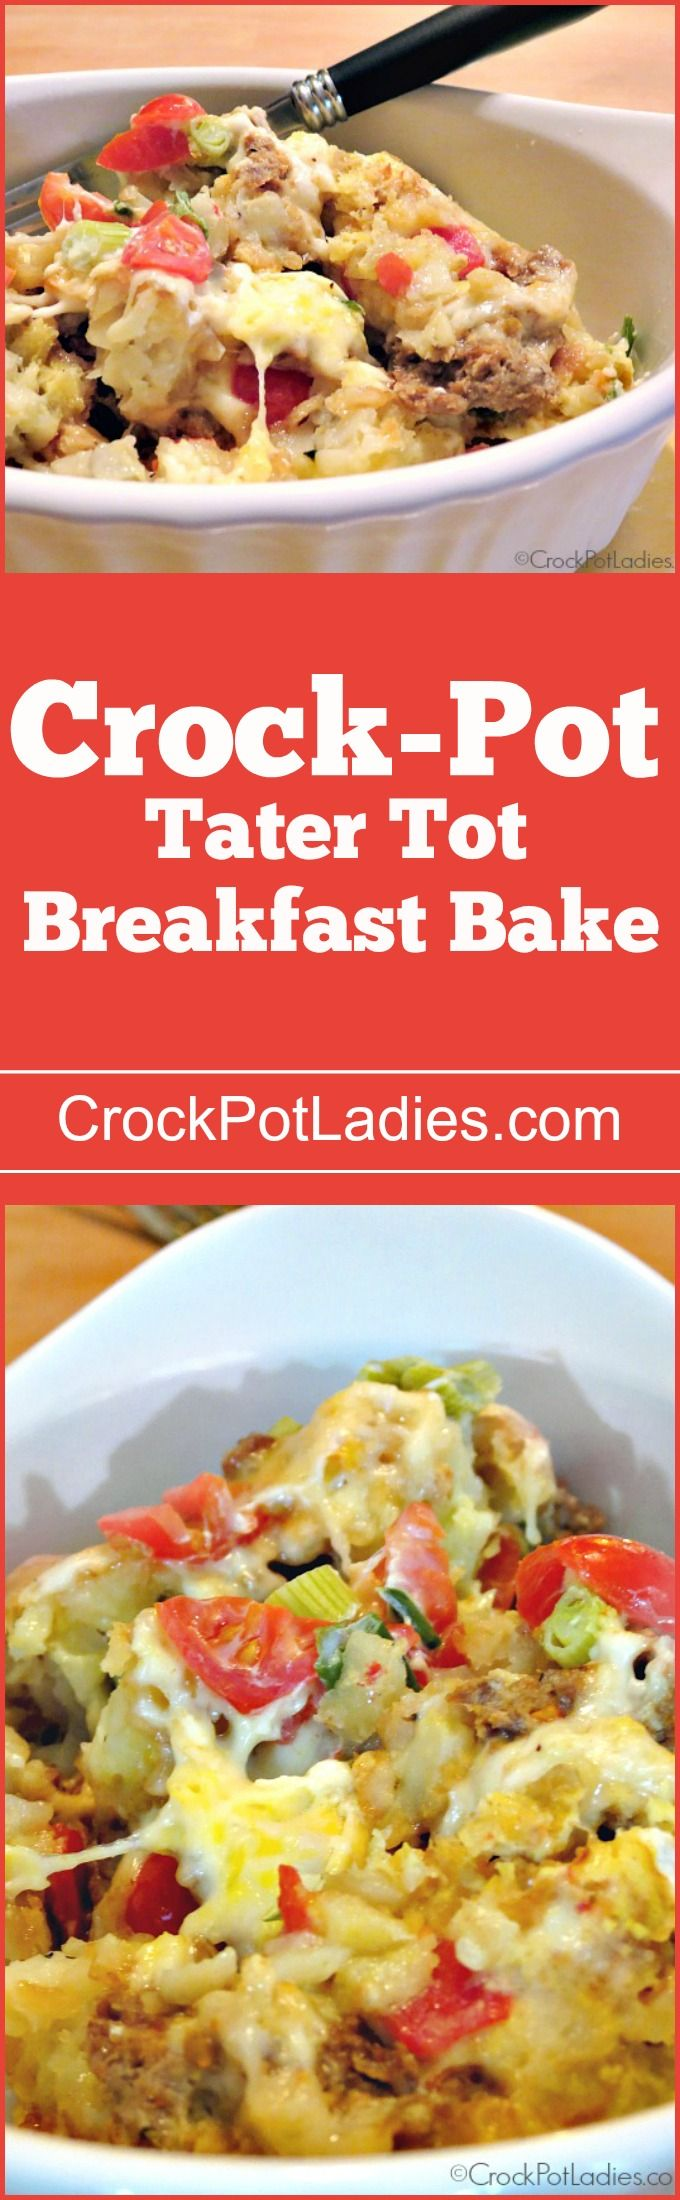 Crock-Pot Tater Tot Breakfast Bake - Tater tots, sausage, cheese & eggs combine in this recipe for Crock-Pot Tater Tot Breakfast Bake. Prepare everything the night before for a yummy breakfast!  via @CrockPotLadies